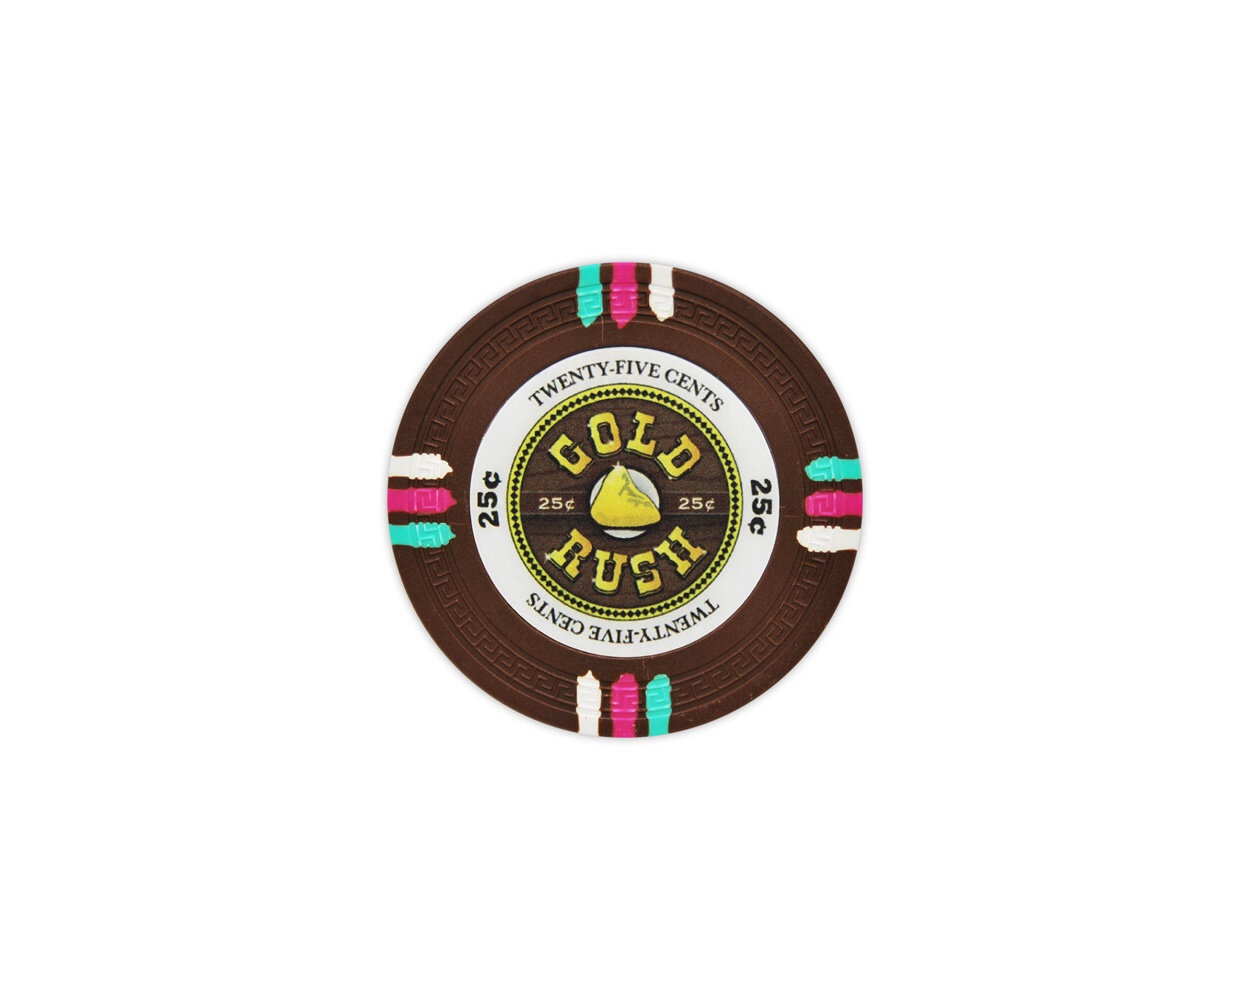 Gold Rush - 25¢ Brown Clay Poker Chips